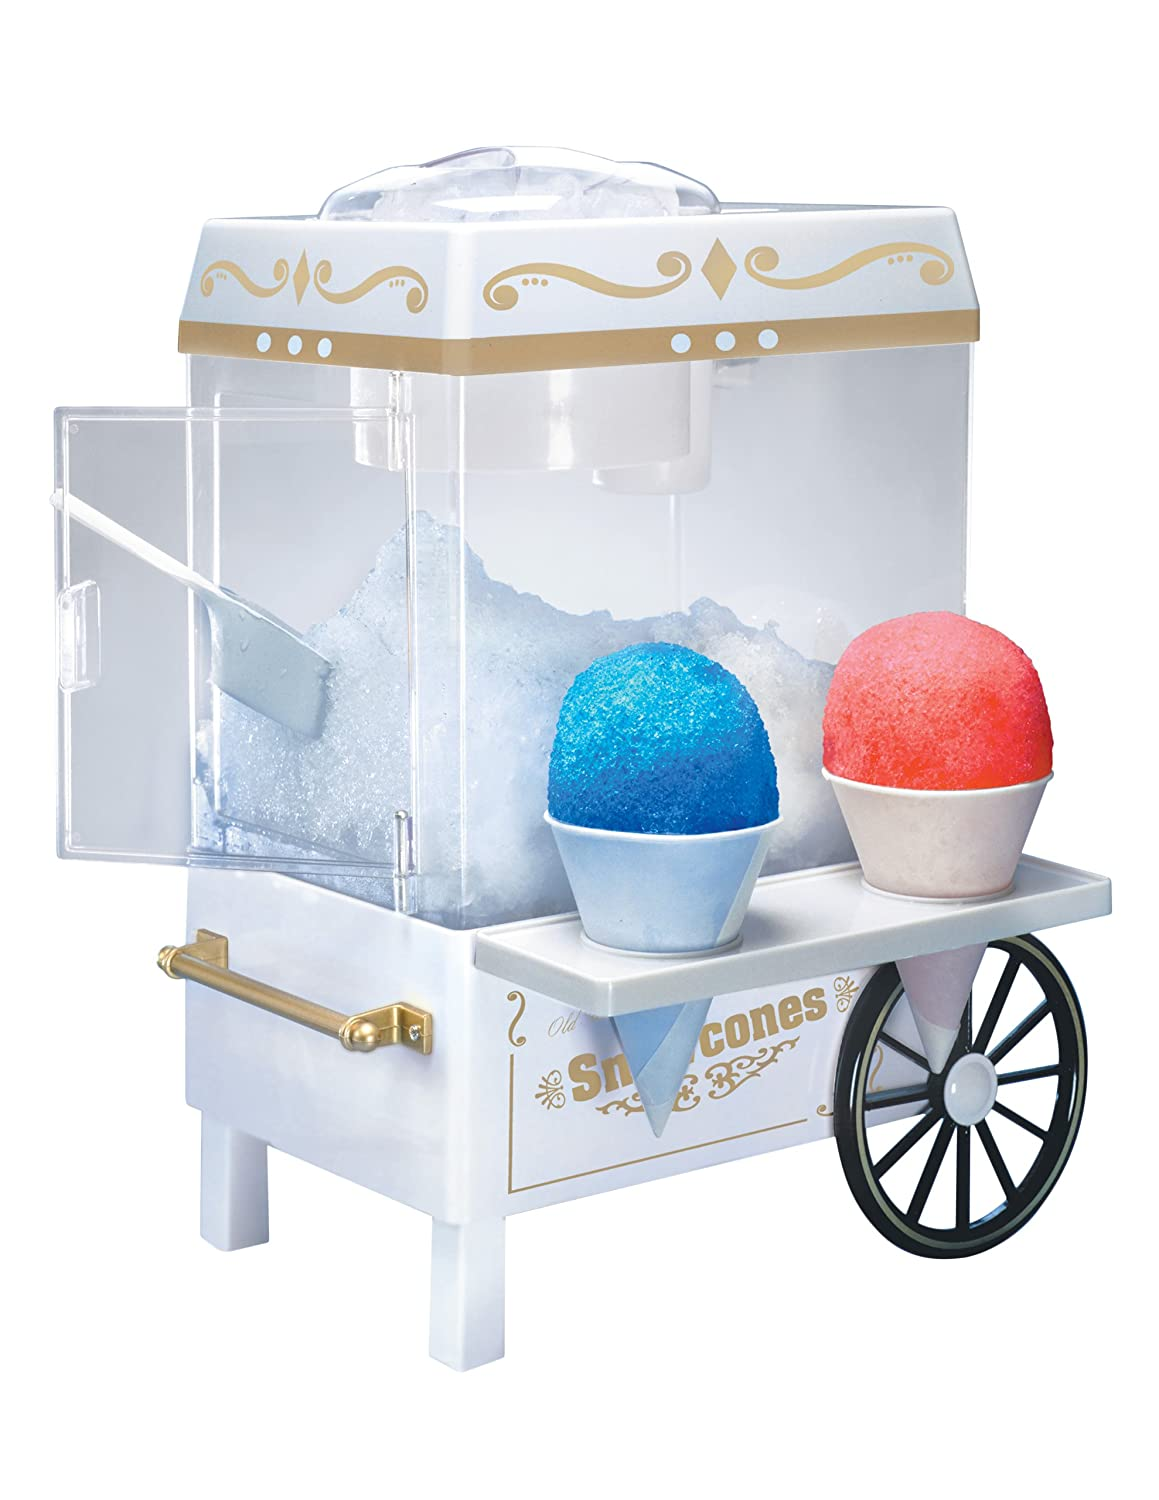 Top 9 Best Kids Snowcones Machine Reviews in 2021 15